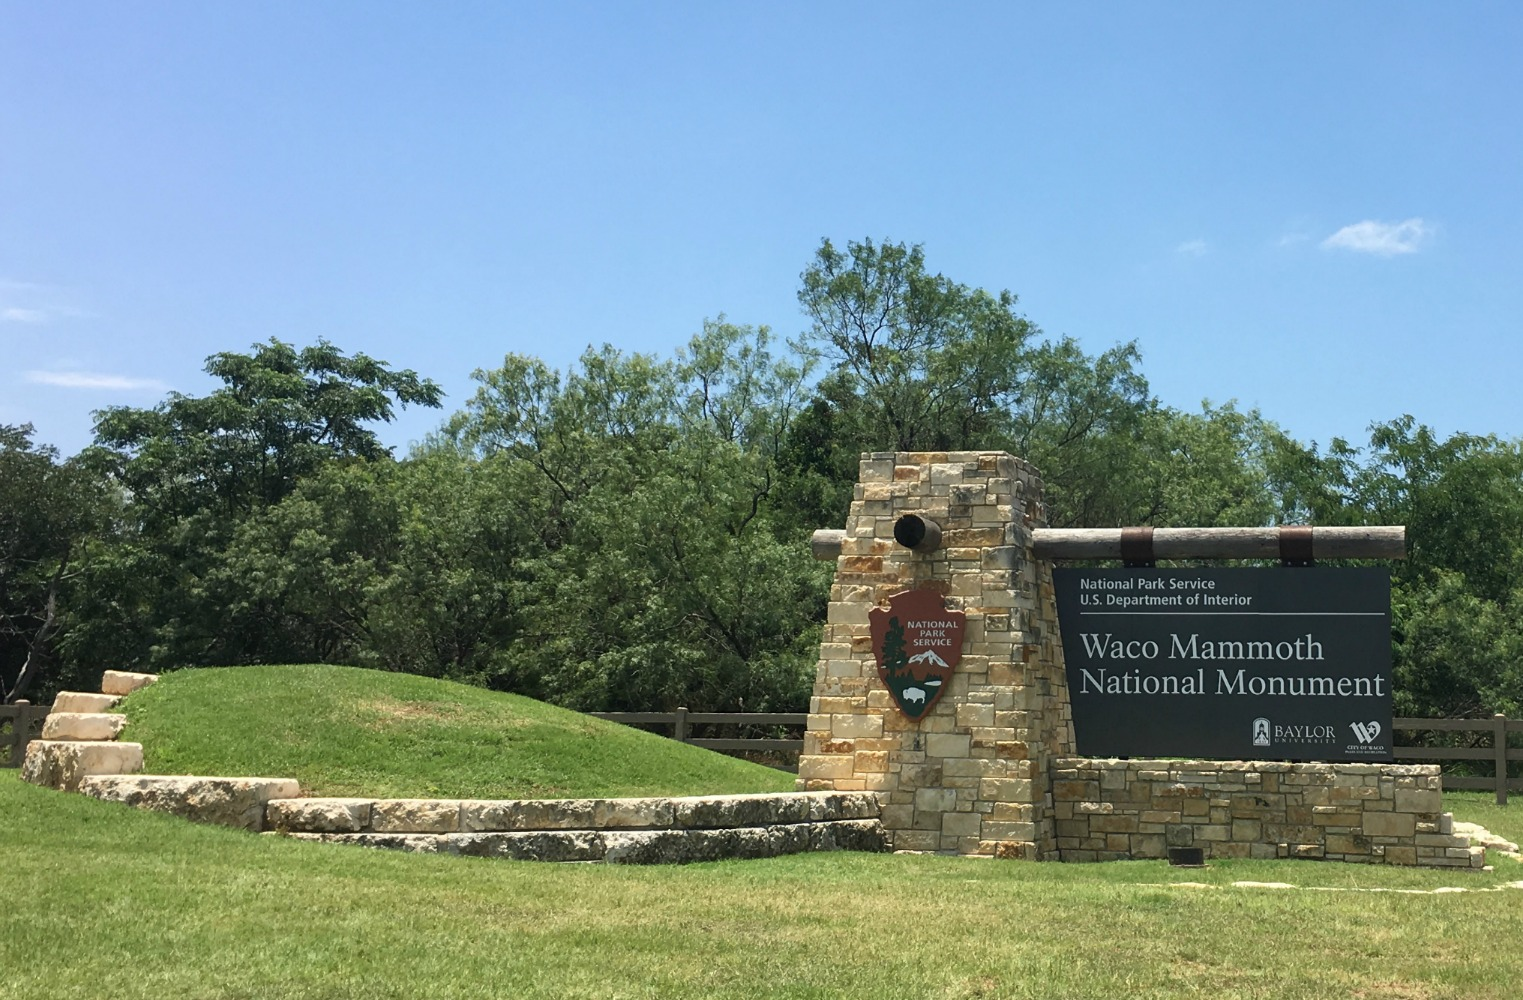 Visit Waco, a super Texas weekend getaway, and the Waco Mammoth National Monument Sign